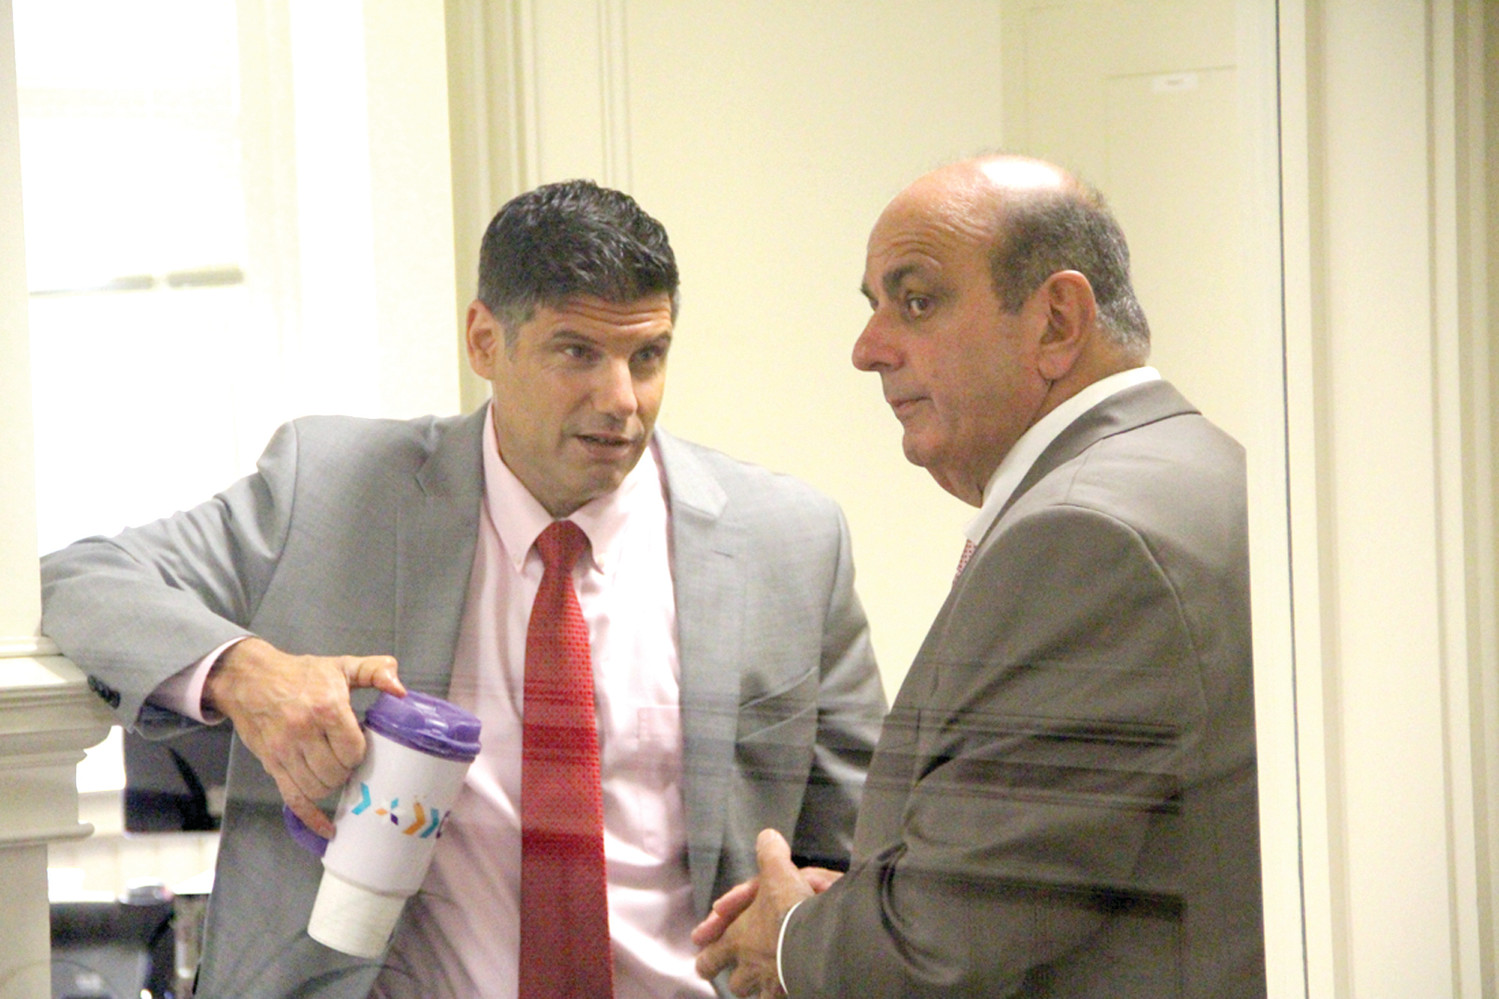 TETE A TETE: Acting Mayor Joseph Solomon and his newly named chief of staff, City Planner William DePasquale,  confer in the corridor outside DePasquale's office.